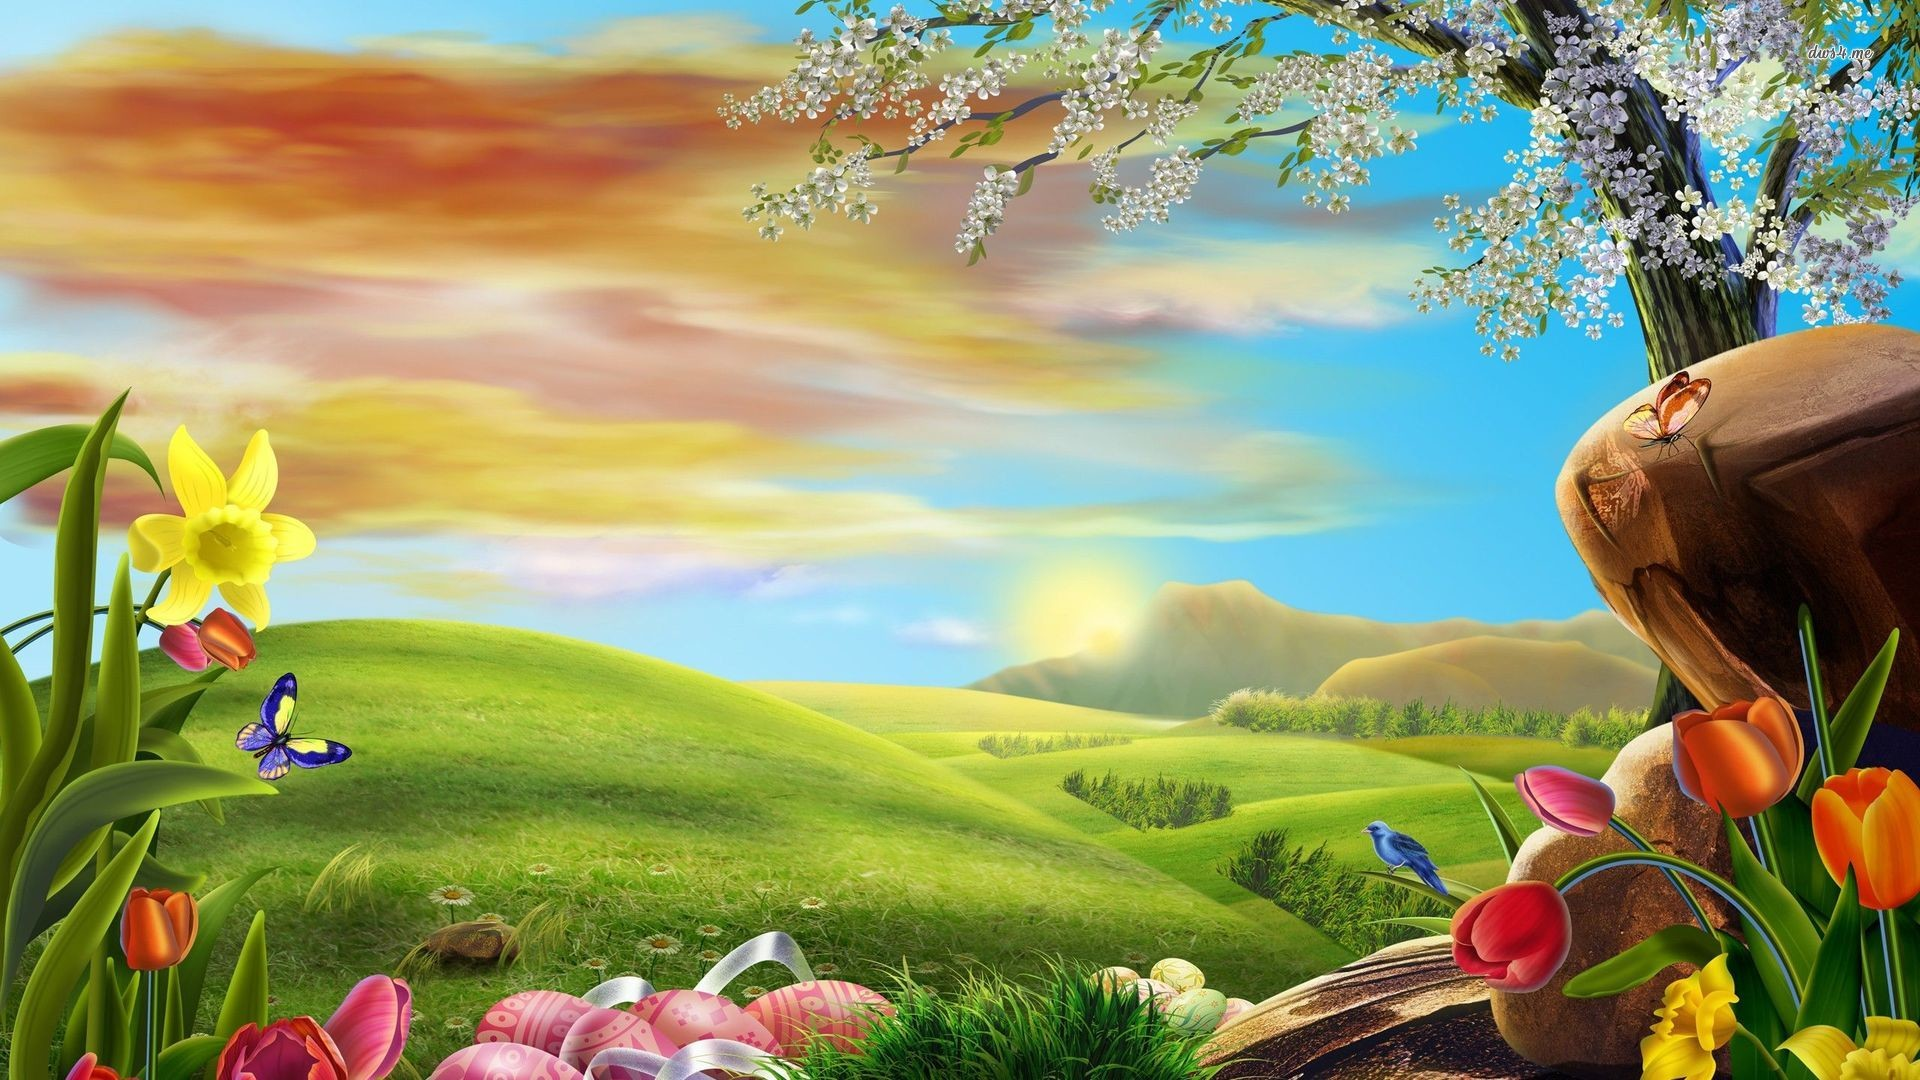 Res: 1920x1080, easter spring wallpaper ; Easter-eggs-in-the-spring-meadow-